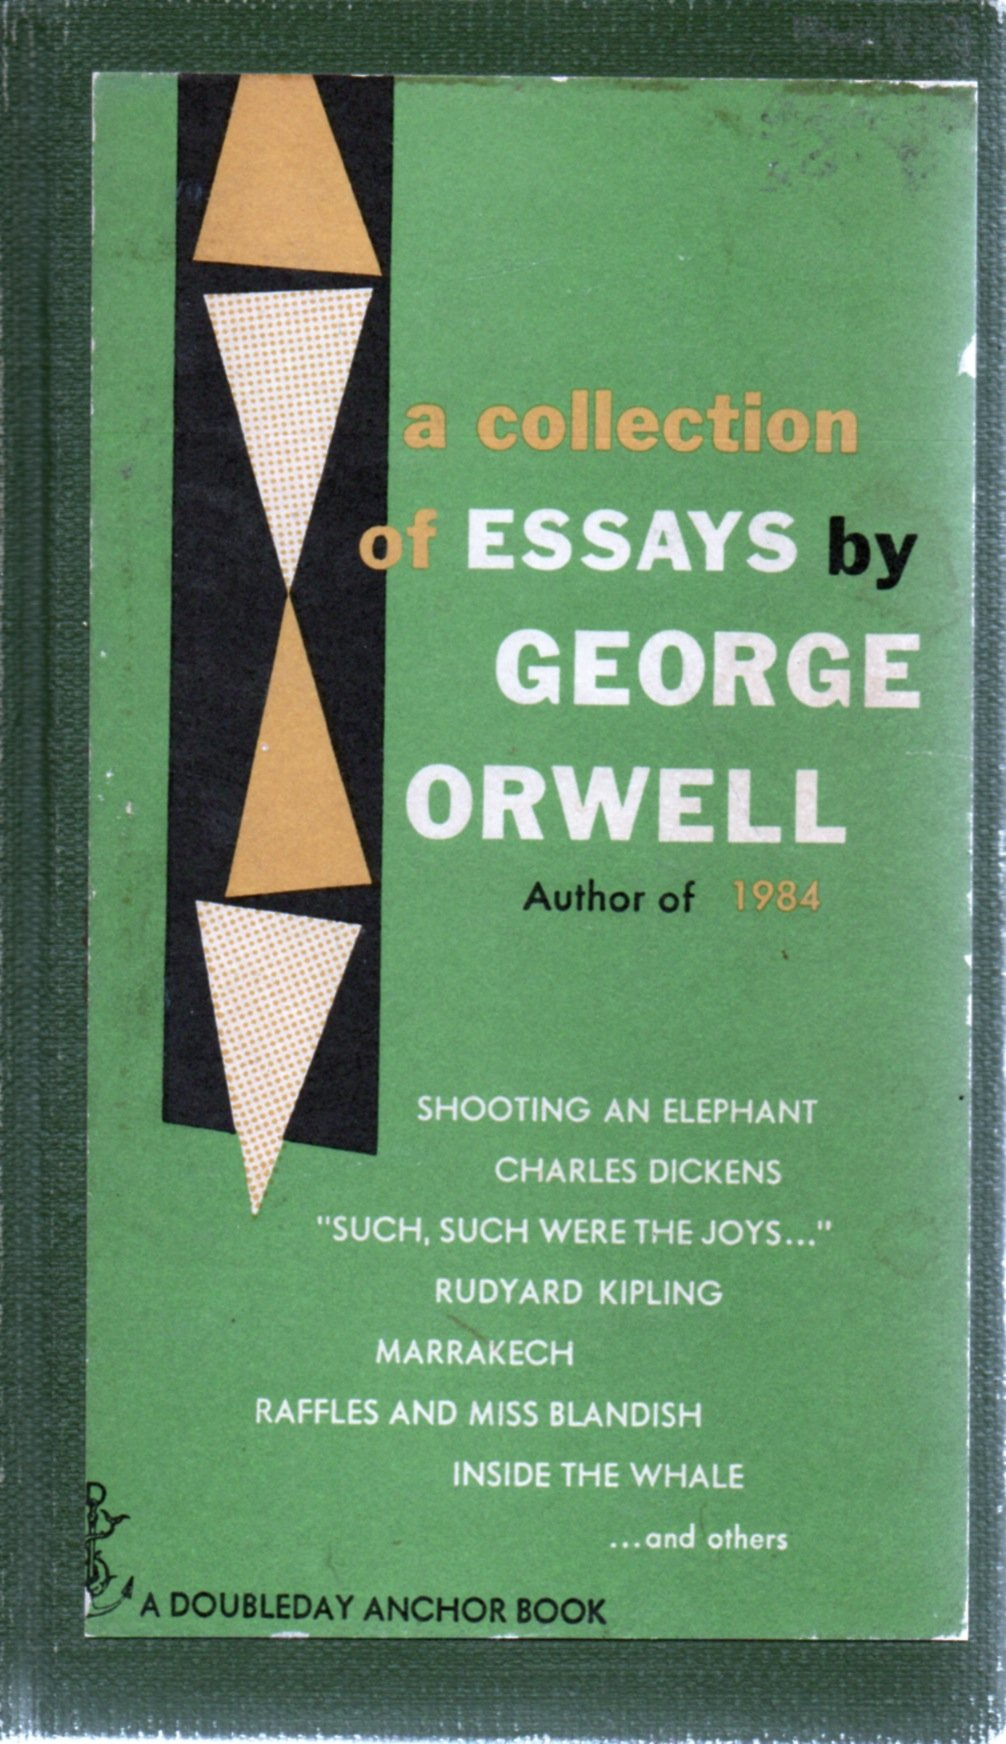 009 George Orwell Essays Essay Example Frightening 1984 Summary Collected Pdf On Writing Full